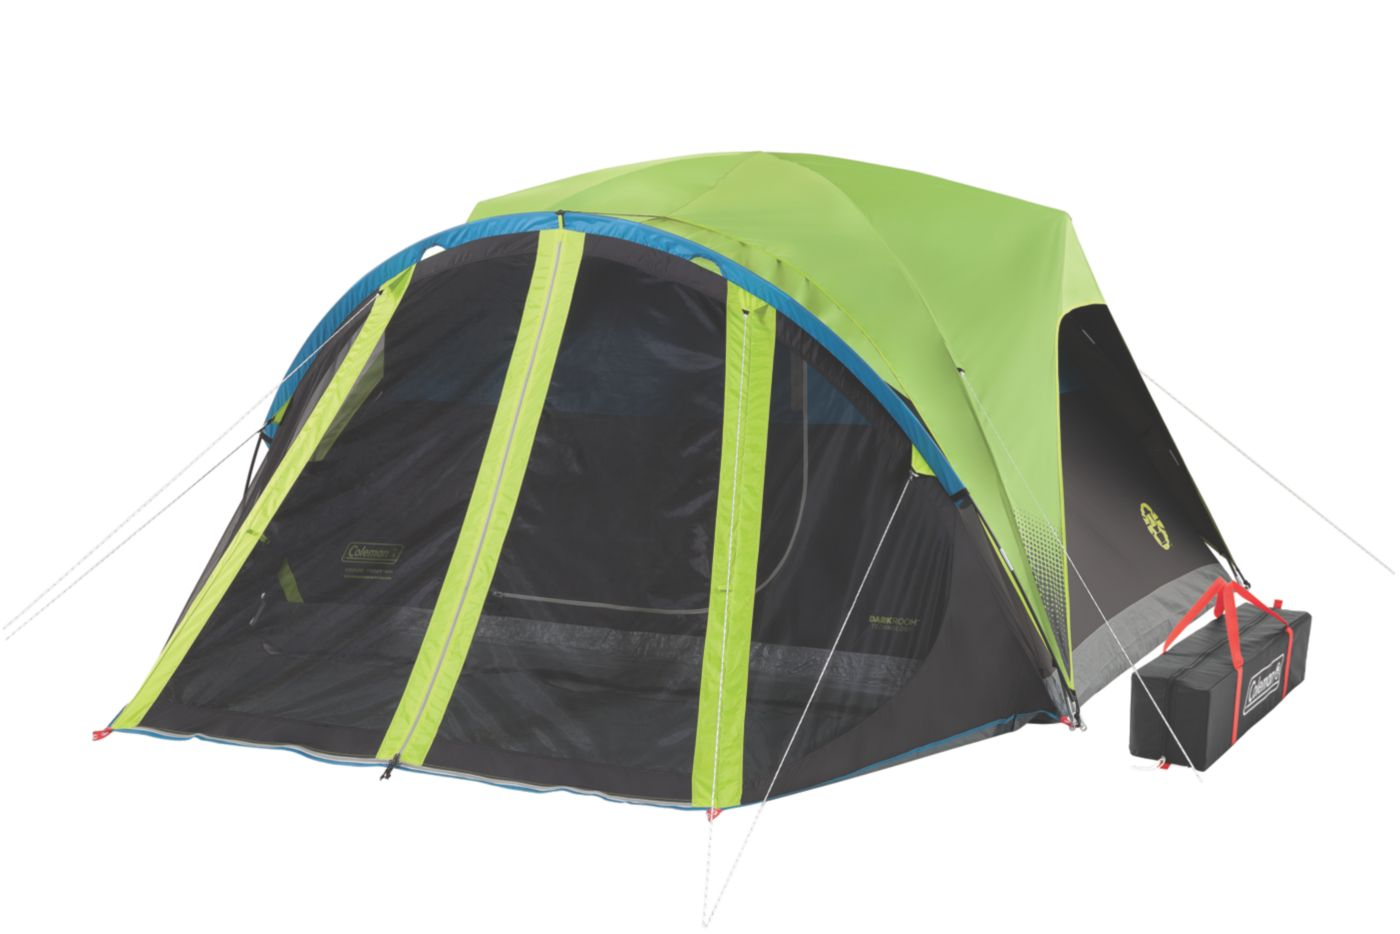 ... Carlsbad™ 4-Person Dark Room Tent with Screen Room  sc 1 st  Coleman & Tents for Camping | 4 Person Dome Tent | Coleman